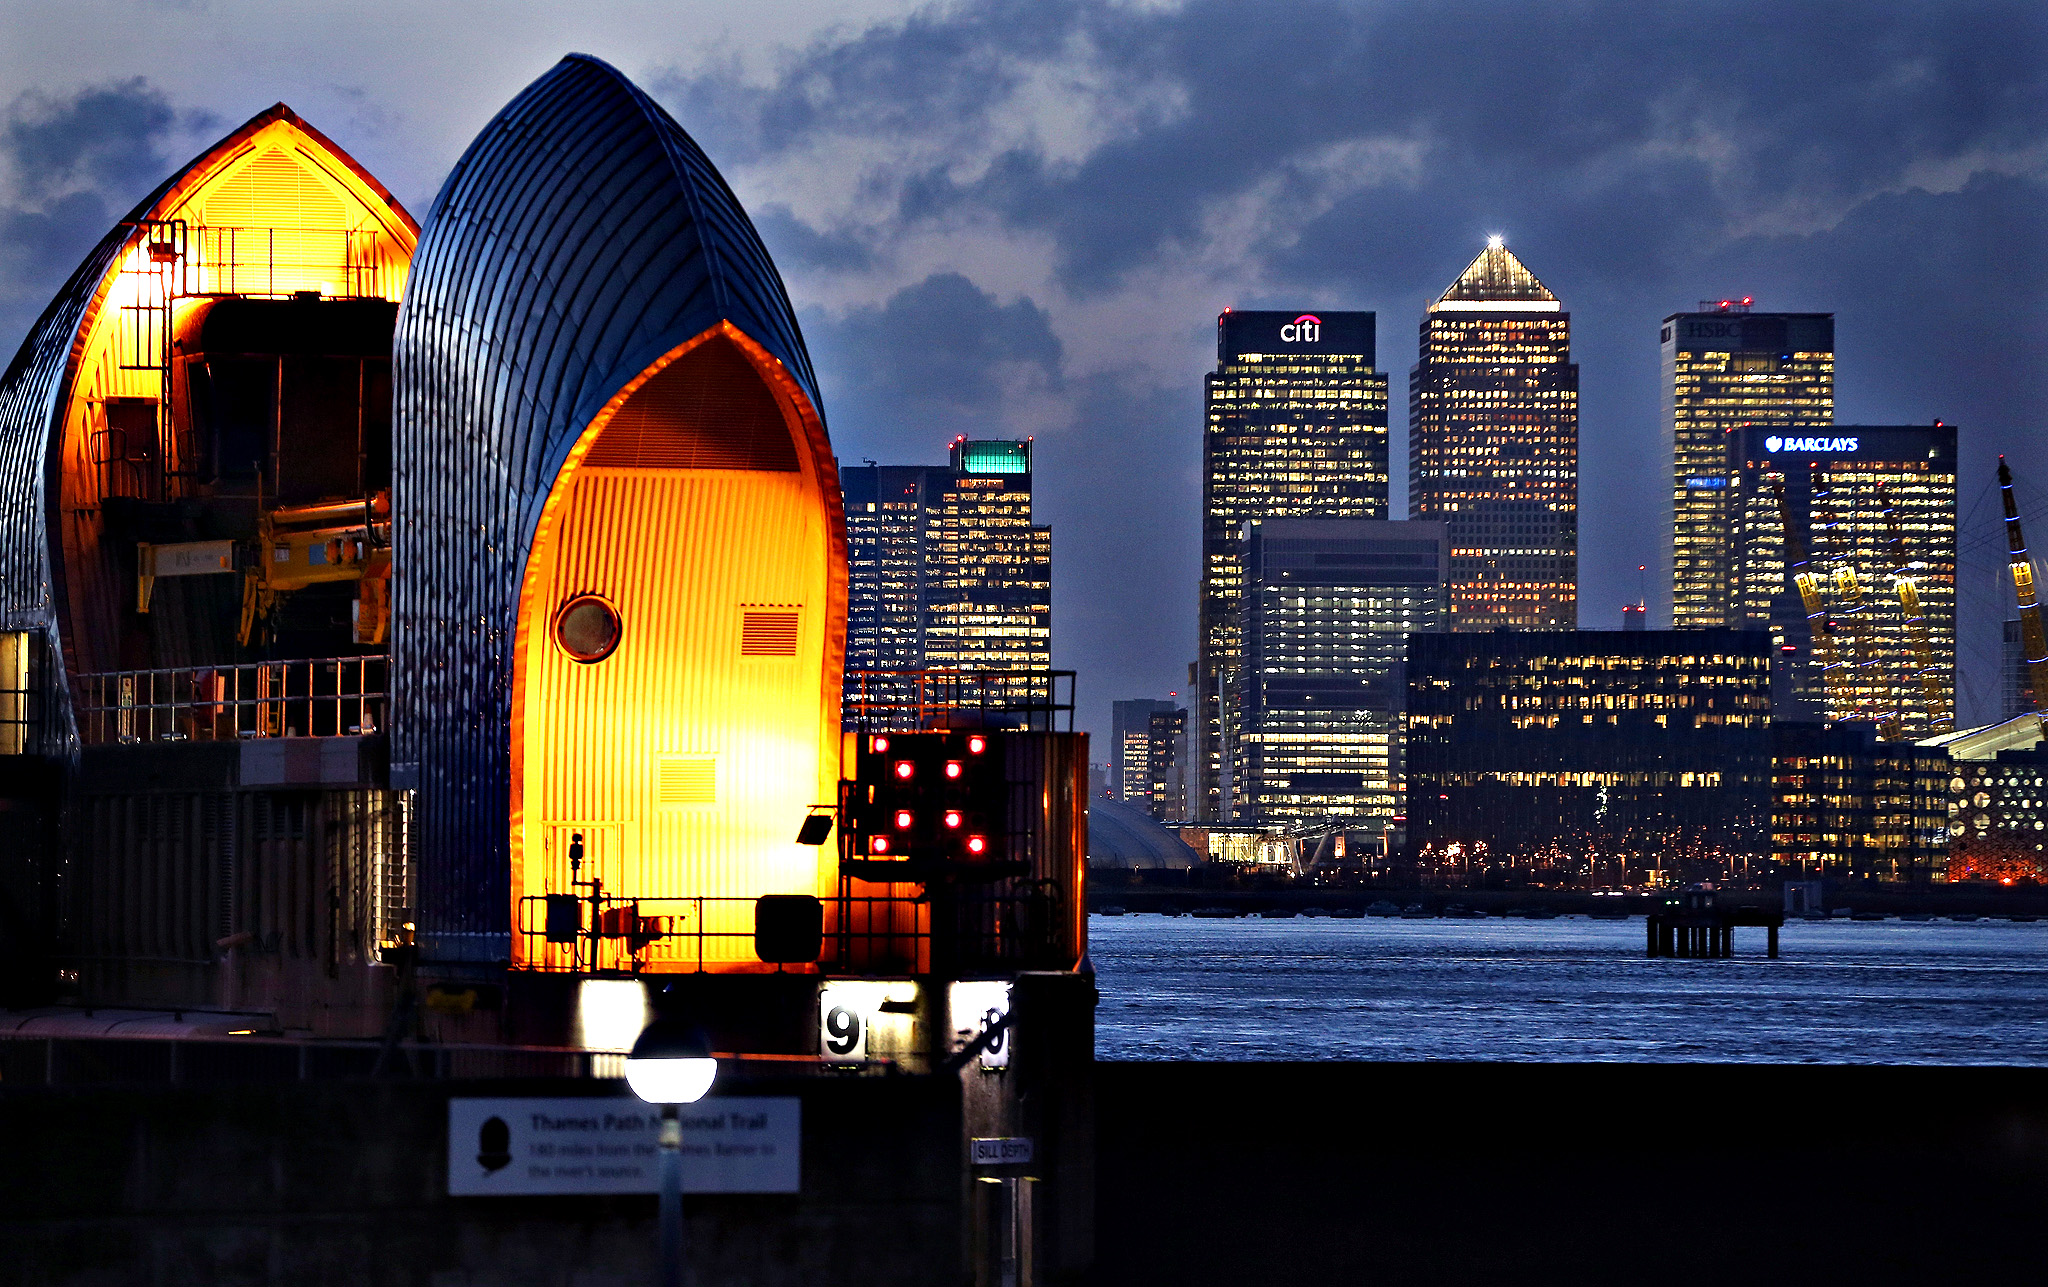 A general view of the Thames Barrier on January 7, 2014 in London, United Kingdom. After a period of recent storms and heavy rain, forecasters are warning that there is still more bad weather to come over the next few days.